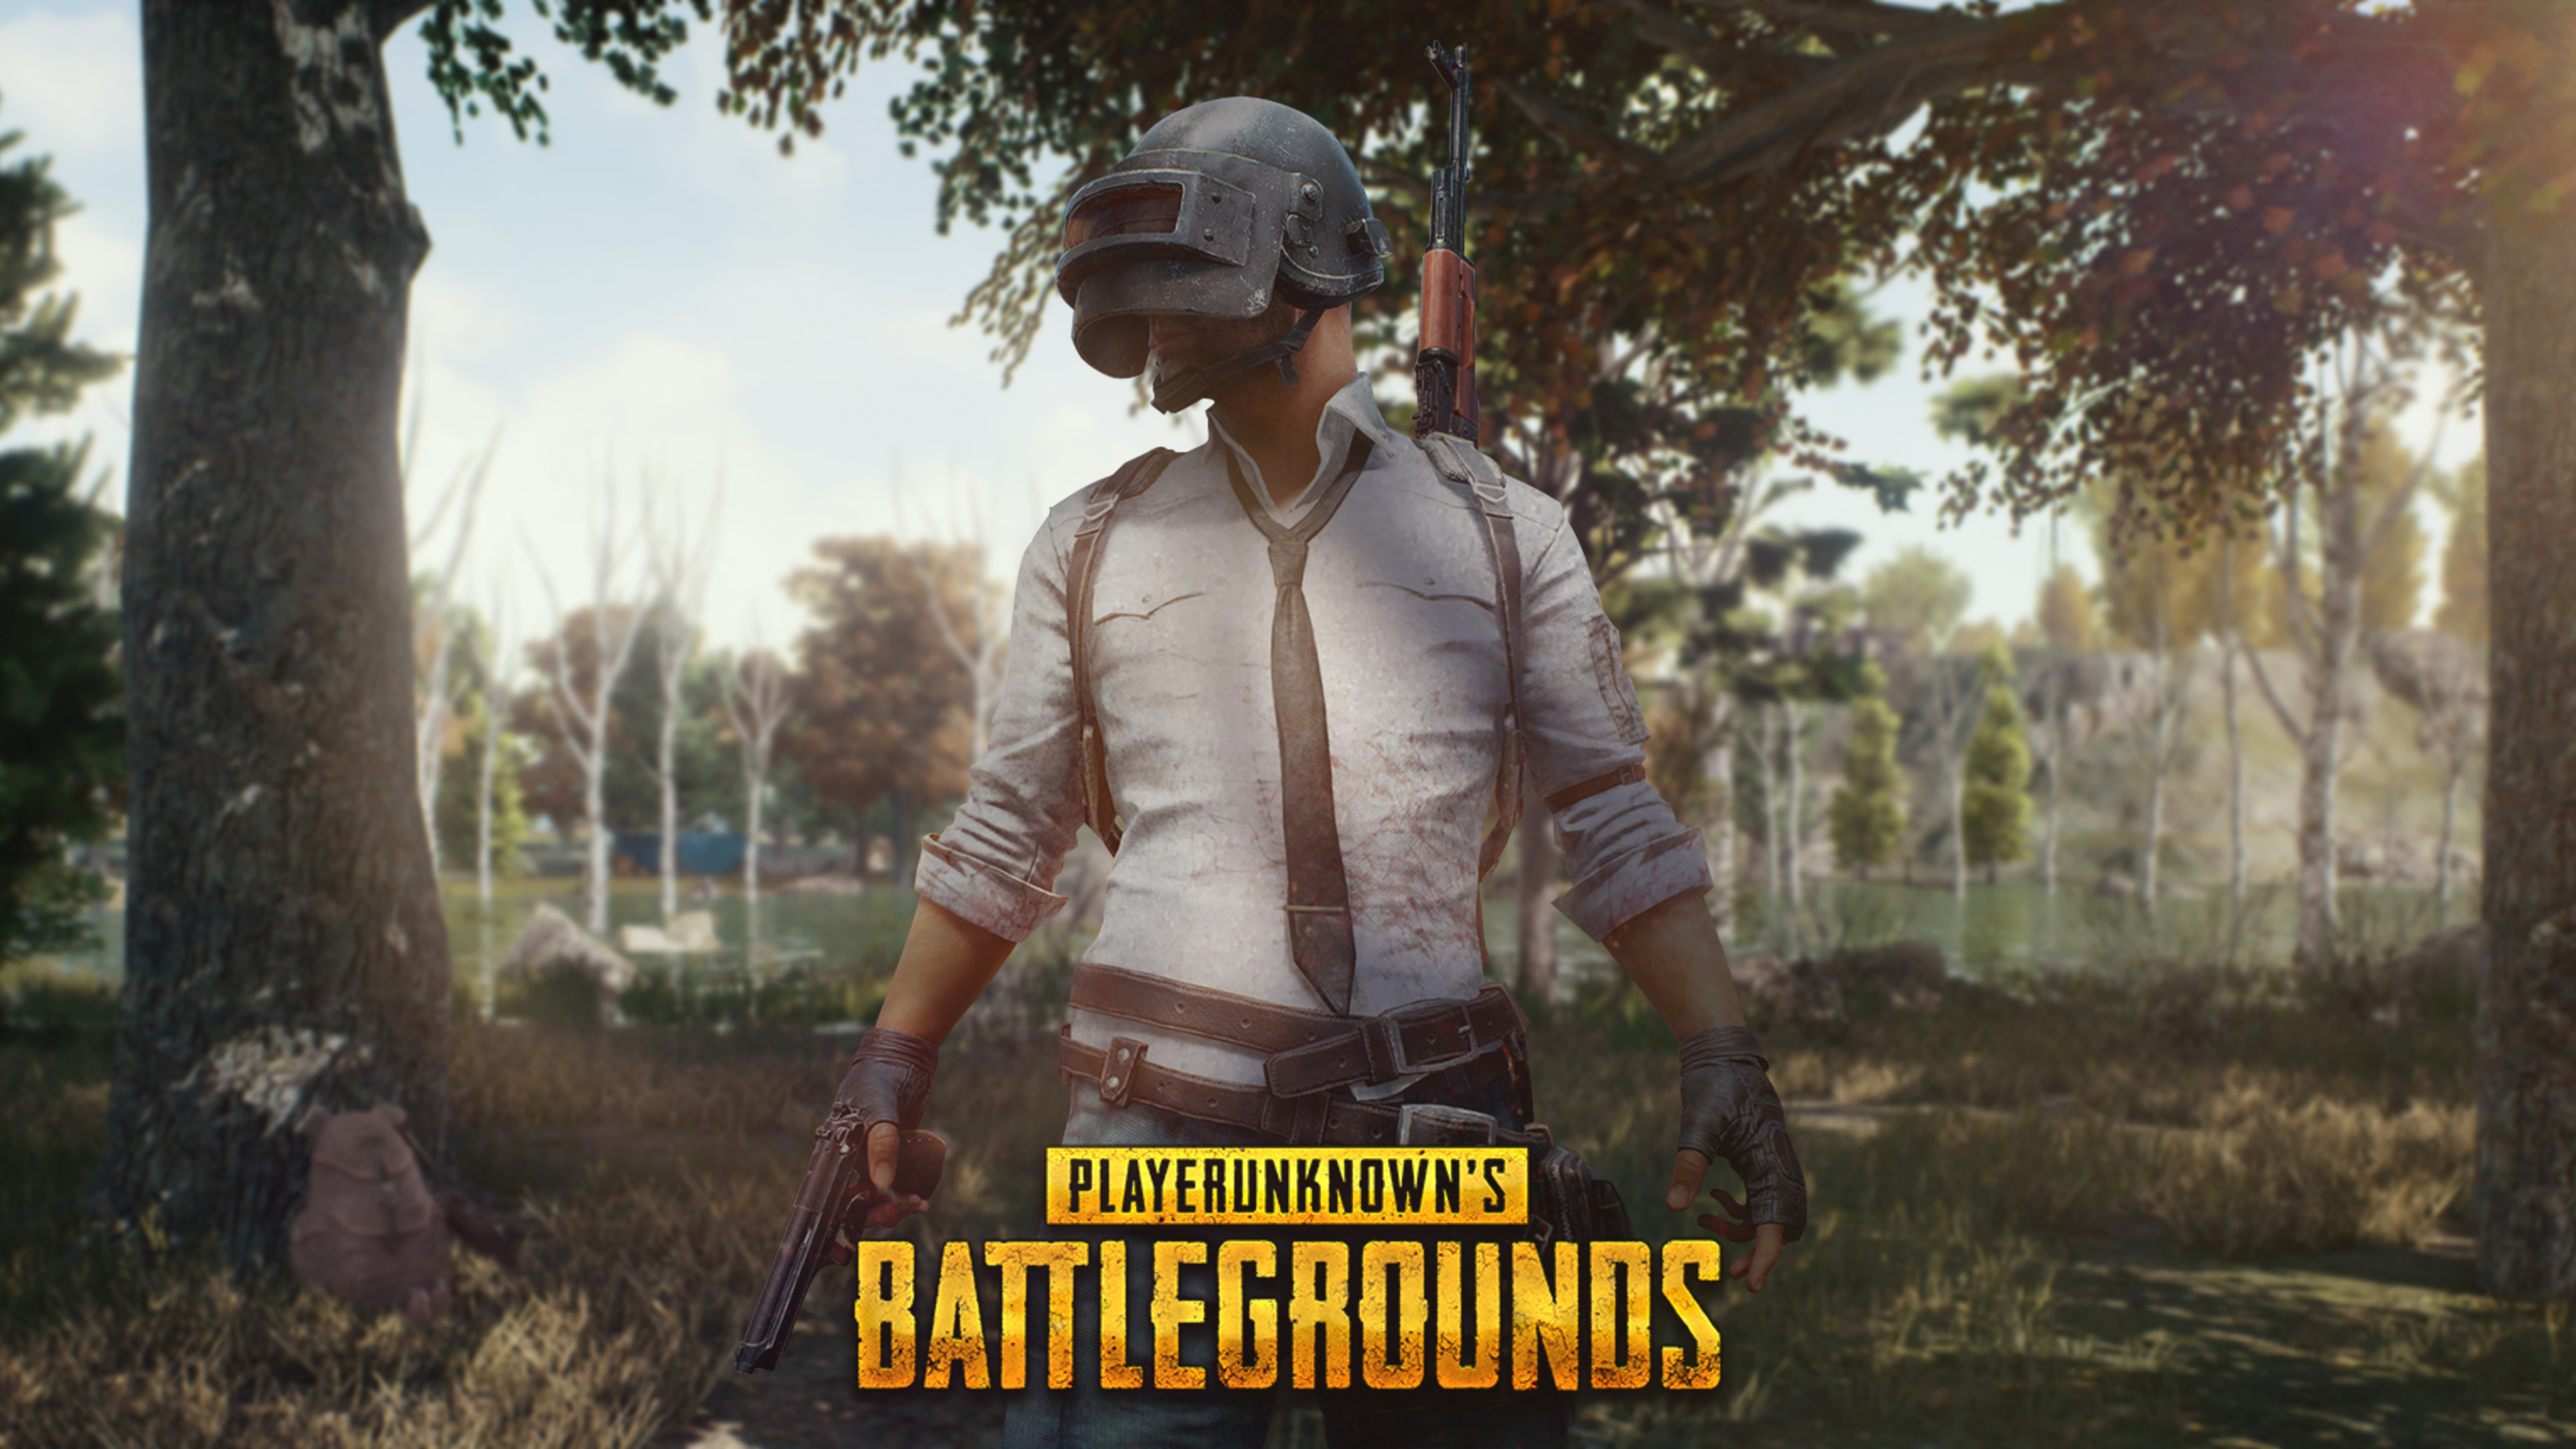 2048x2048 2018 4k Playerunknowns Battlegrounds Ipad Air Hd: Pubg Mobile Helmet Guy 4k Pubg Wallpapers, Playerunknowns